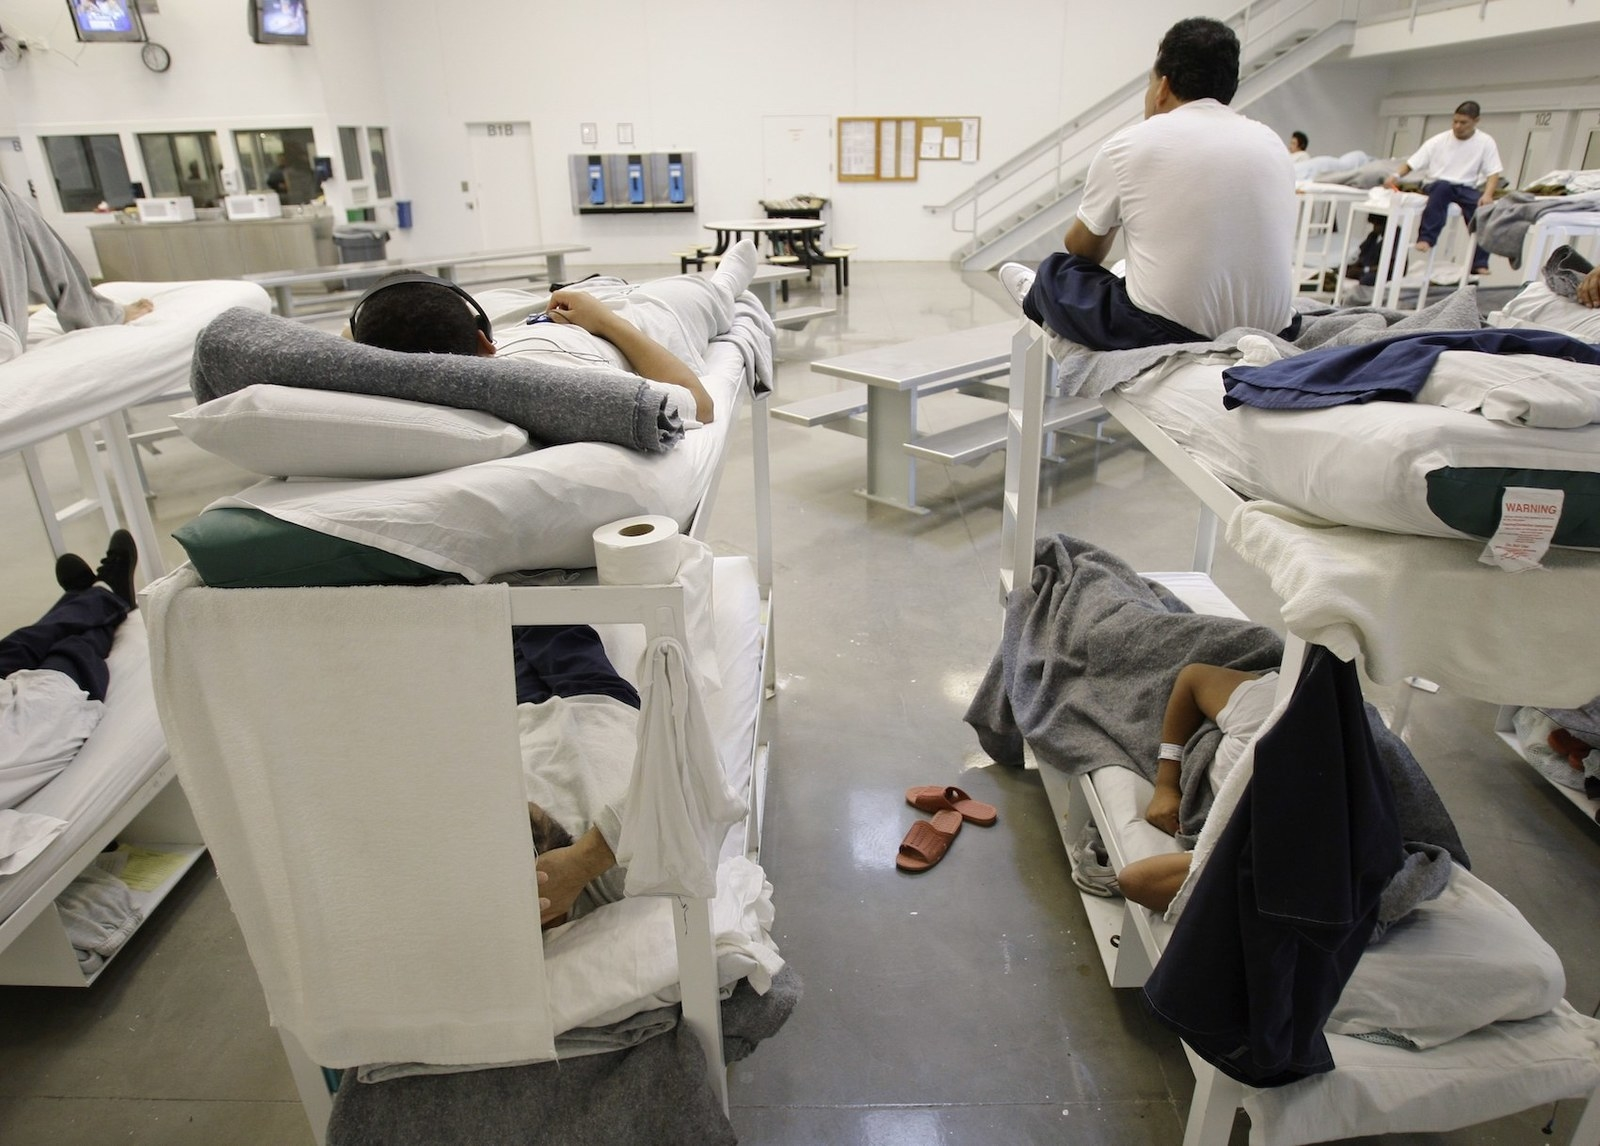 Detainees are shown resting on bunks inside the Northwest Detention Center in Tacoma, Washington.